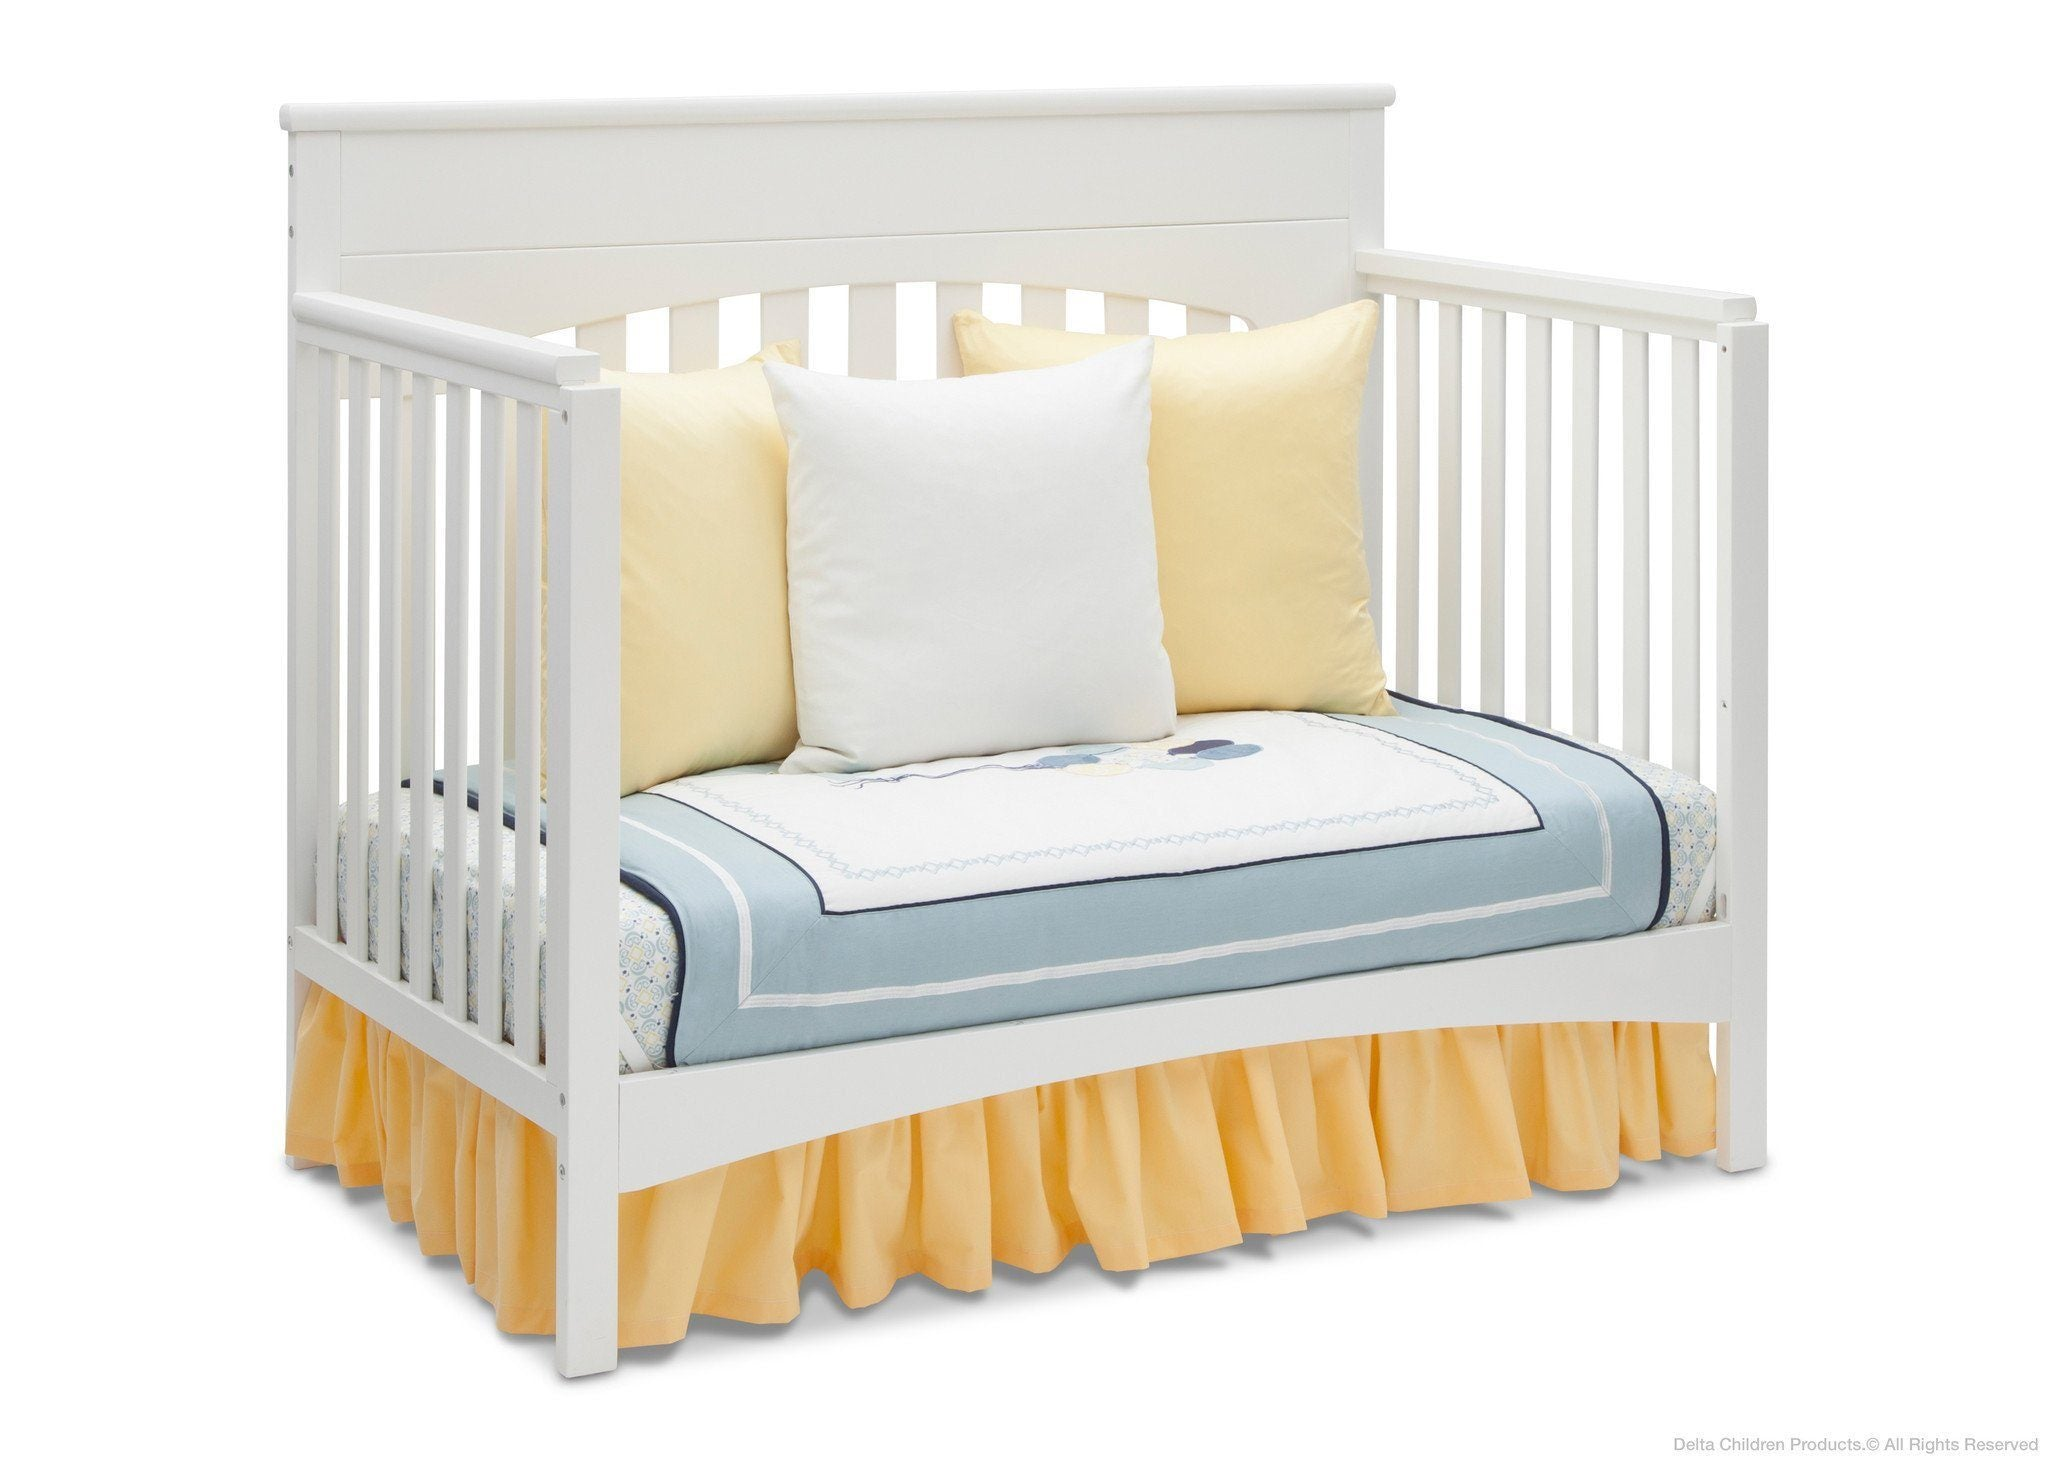 Delta Children White Ambiance (108) Bennington Lifestyle 4-in-1 Crib, Day Bed Conversion a5a